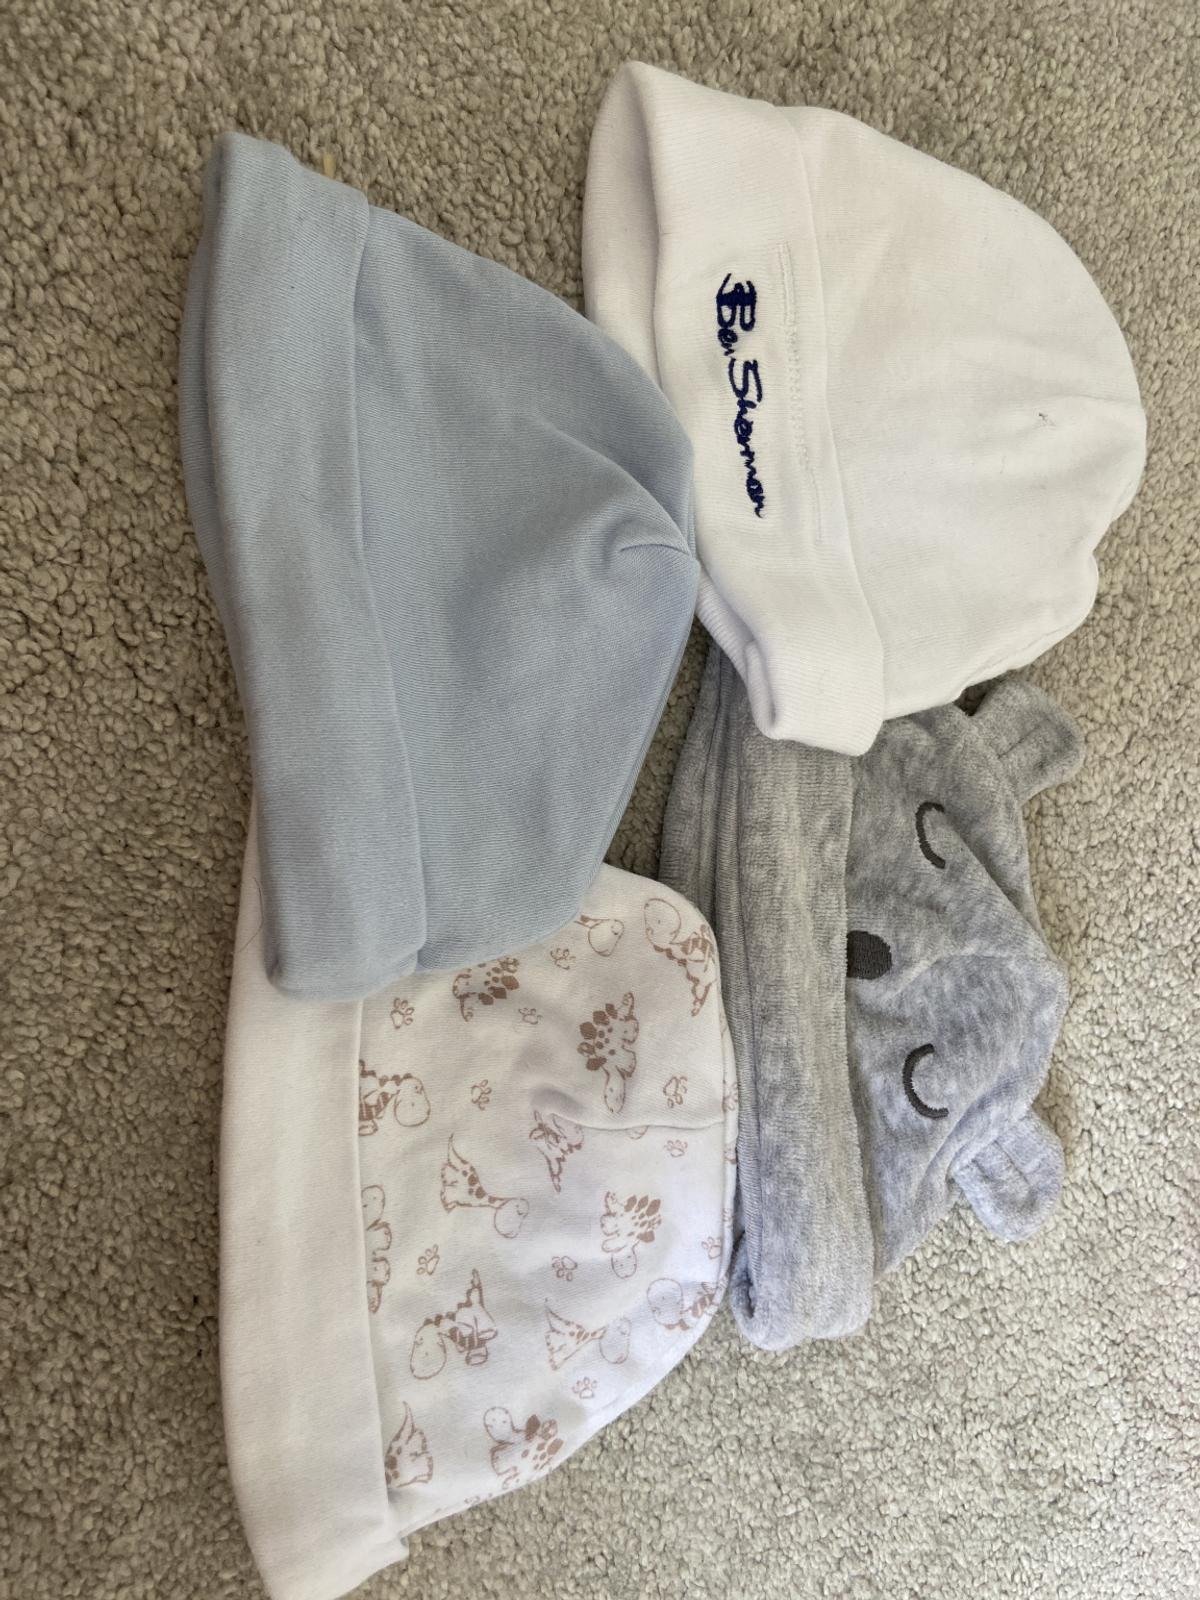 4x baby hats. Ben Sherman (one size) grey hat with ears (up to 1 month) blue hat and white dinosaur hat (both 3-6 months) collect from B79